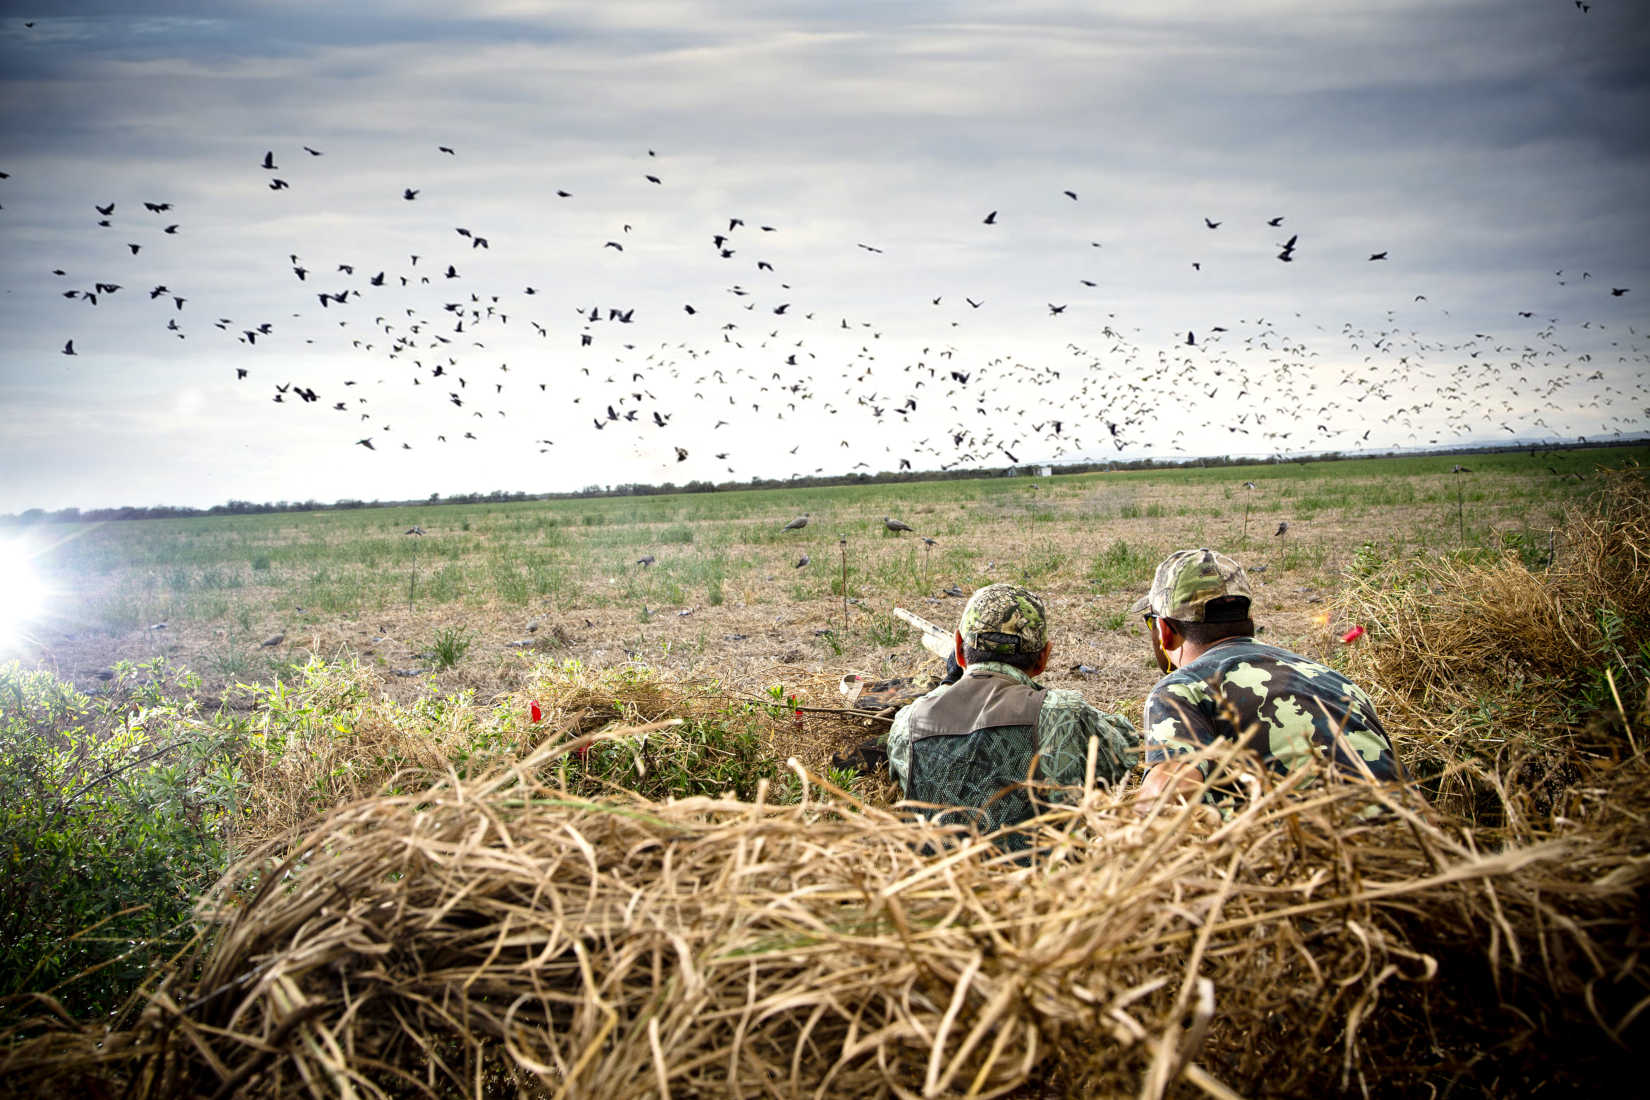 Dove Season Is Here: How to Find the Best Shell for Your Shotgun